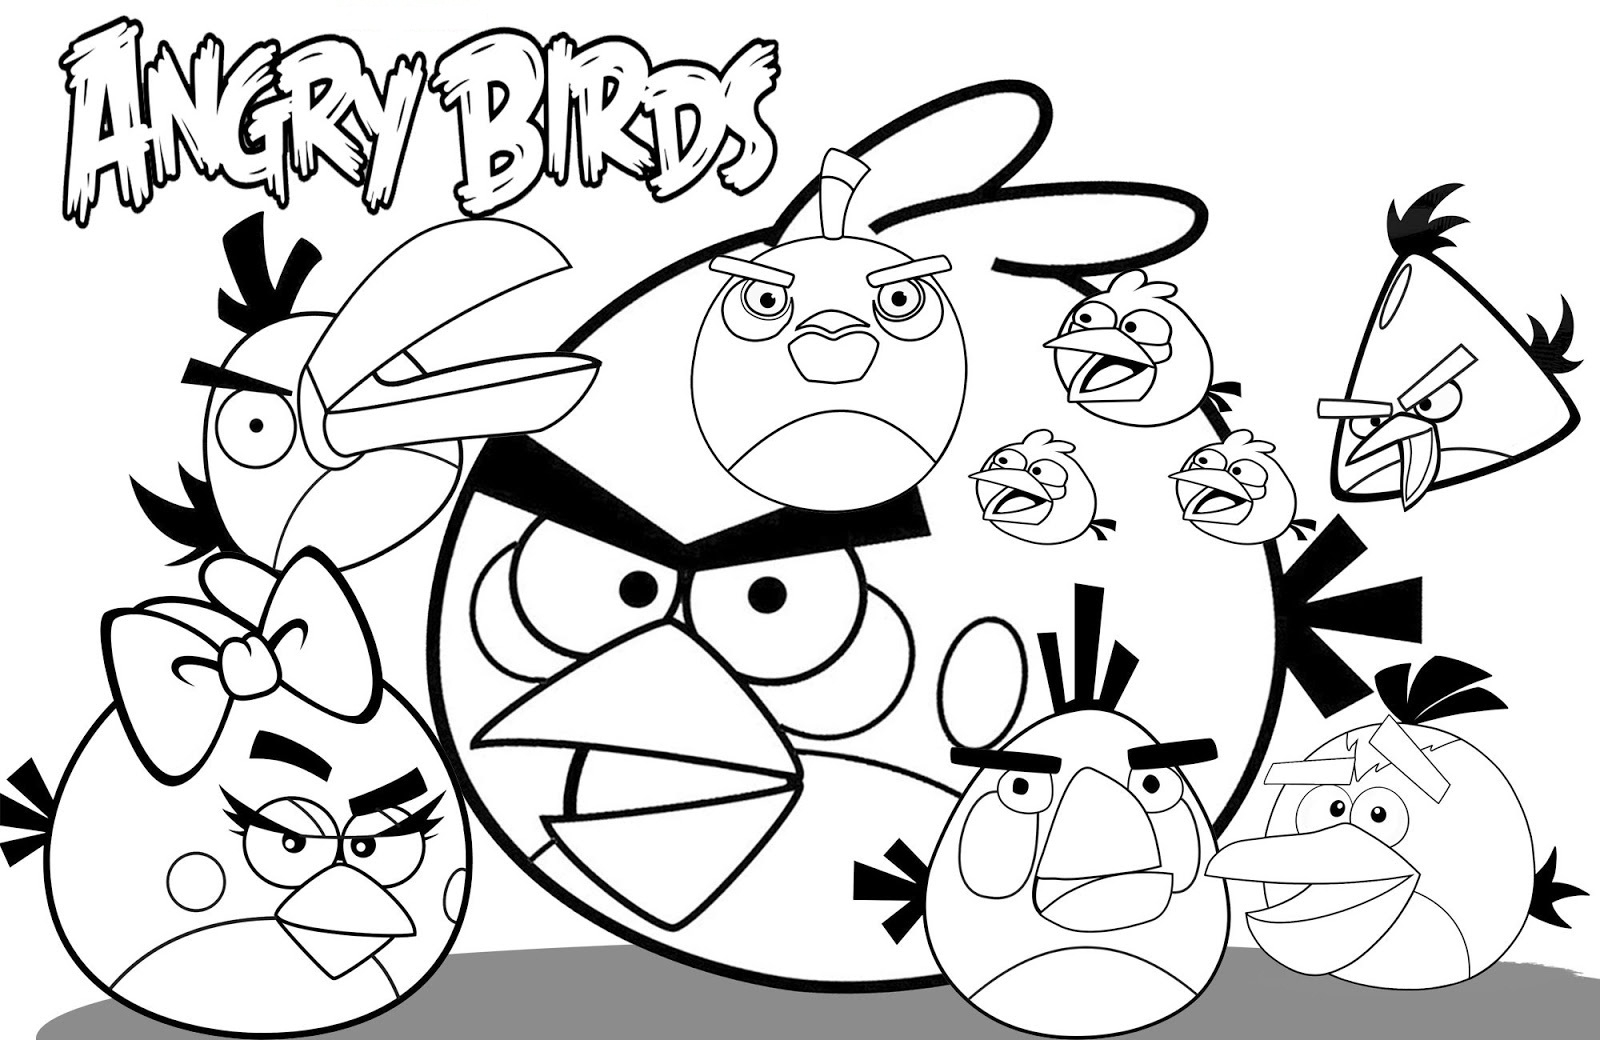 angry birds 2 coloring pages 15 best printable angry birds colouring pages for kids birds 2 angry coloring pages